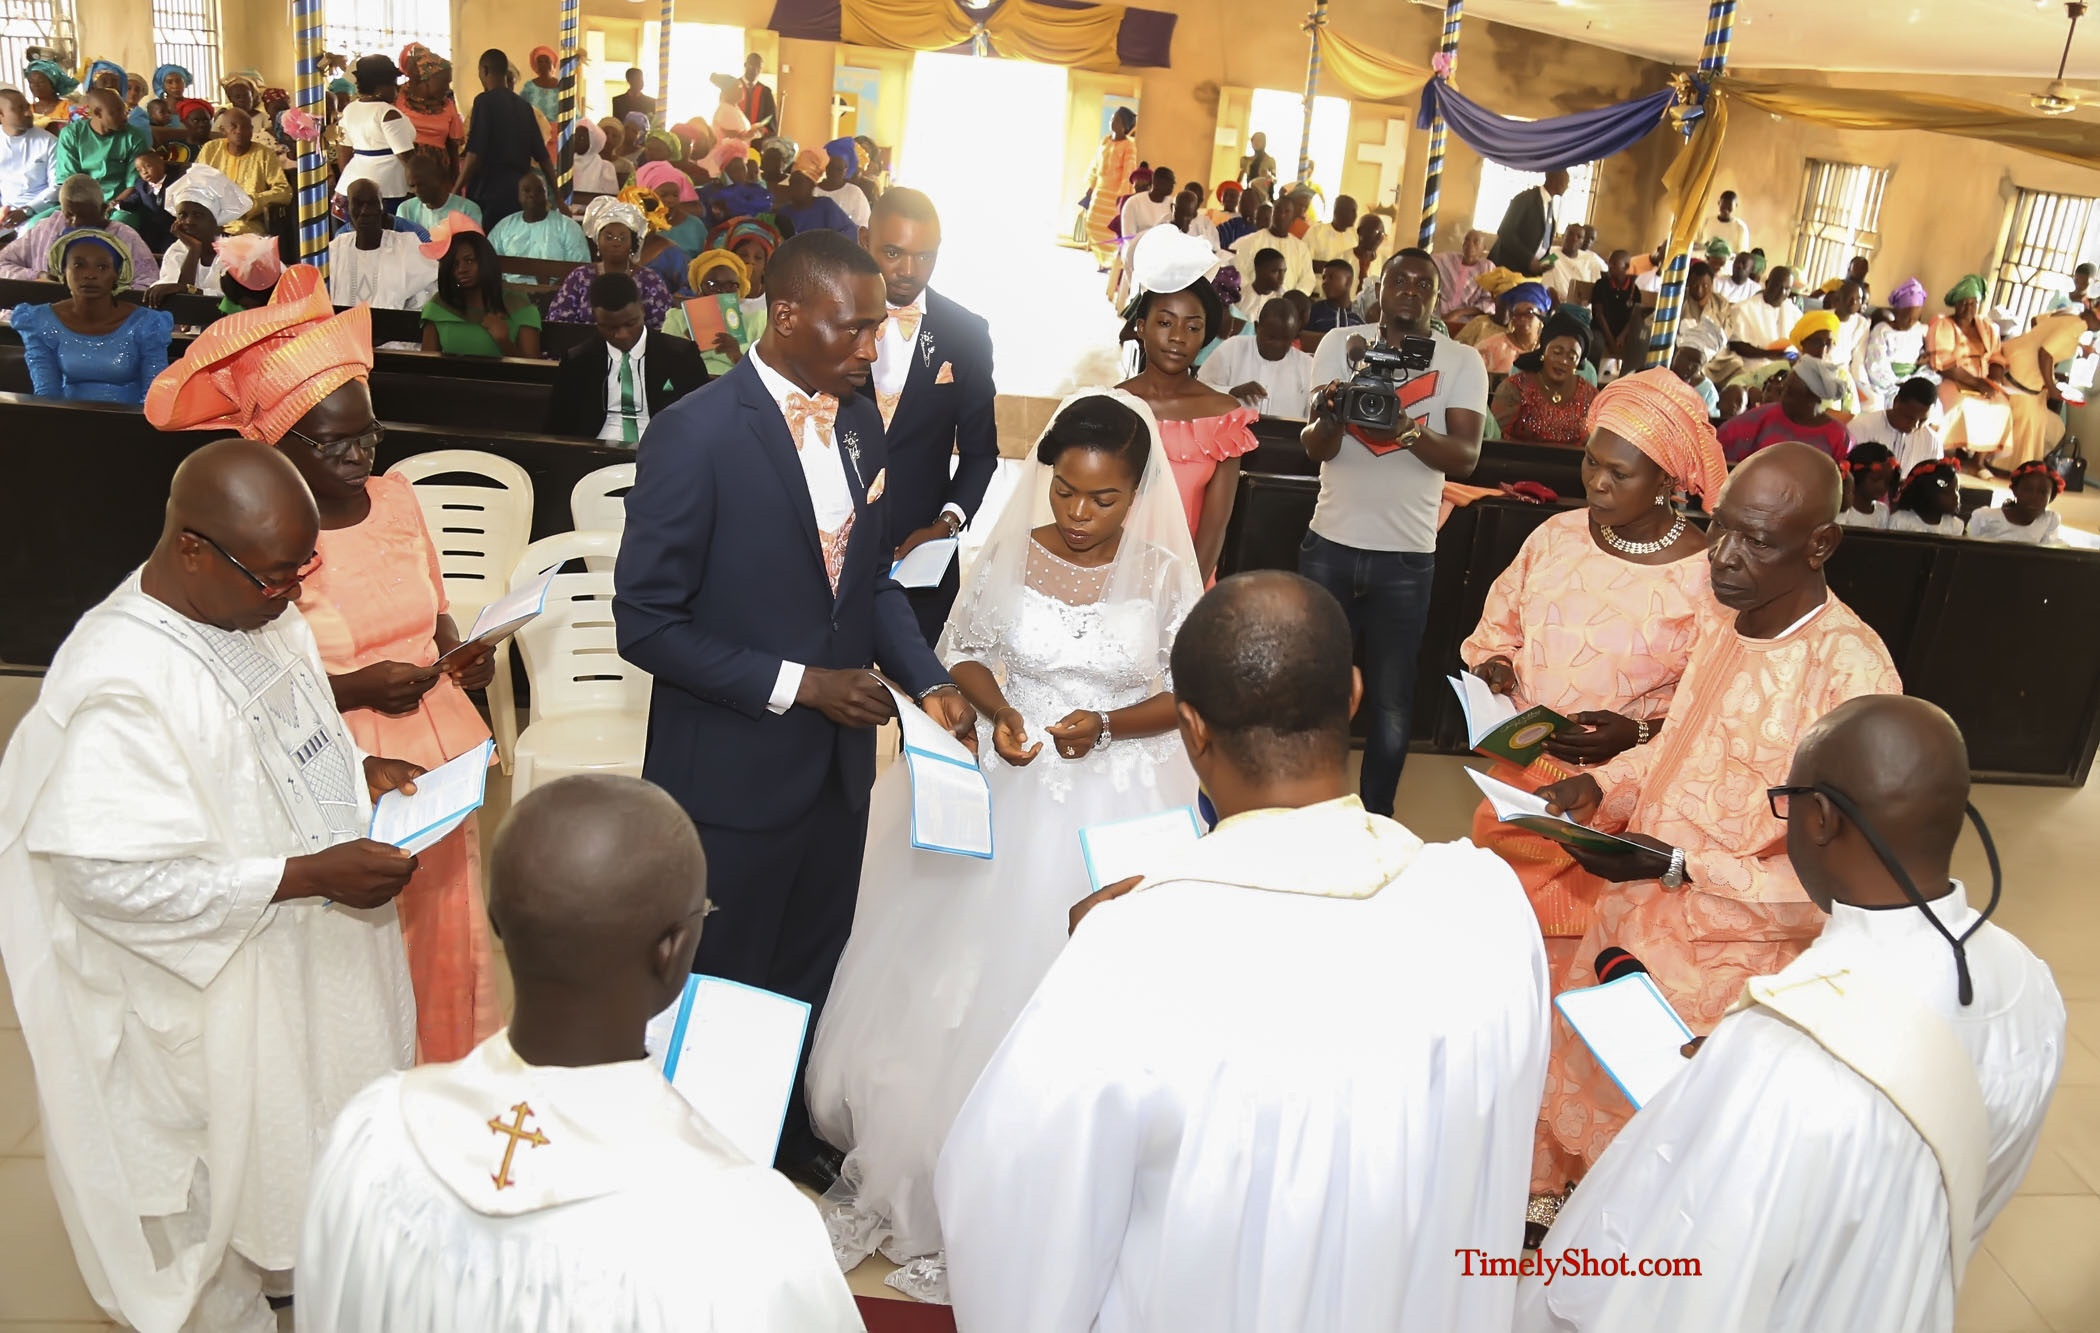 white wedding and church service